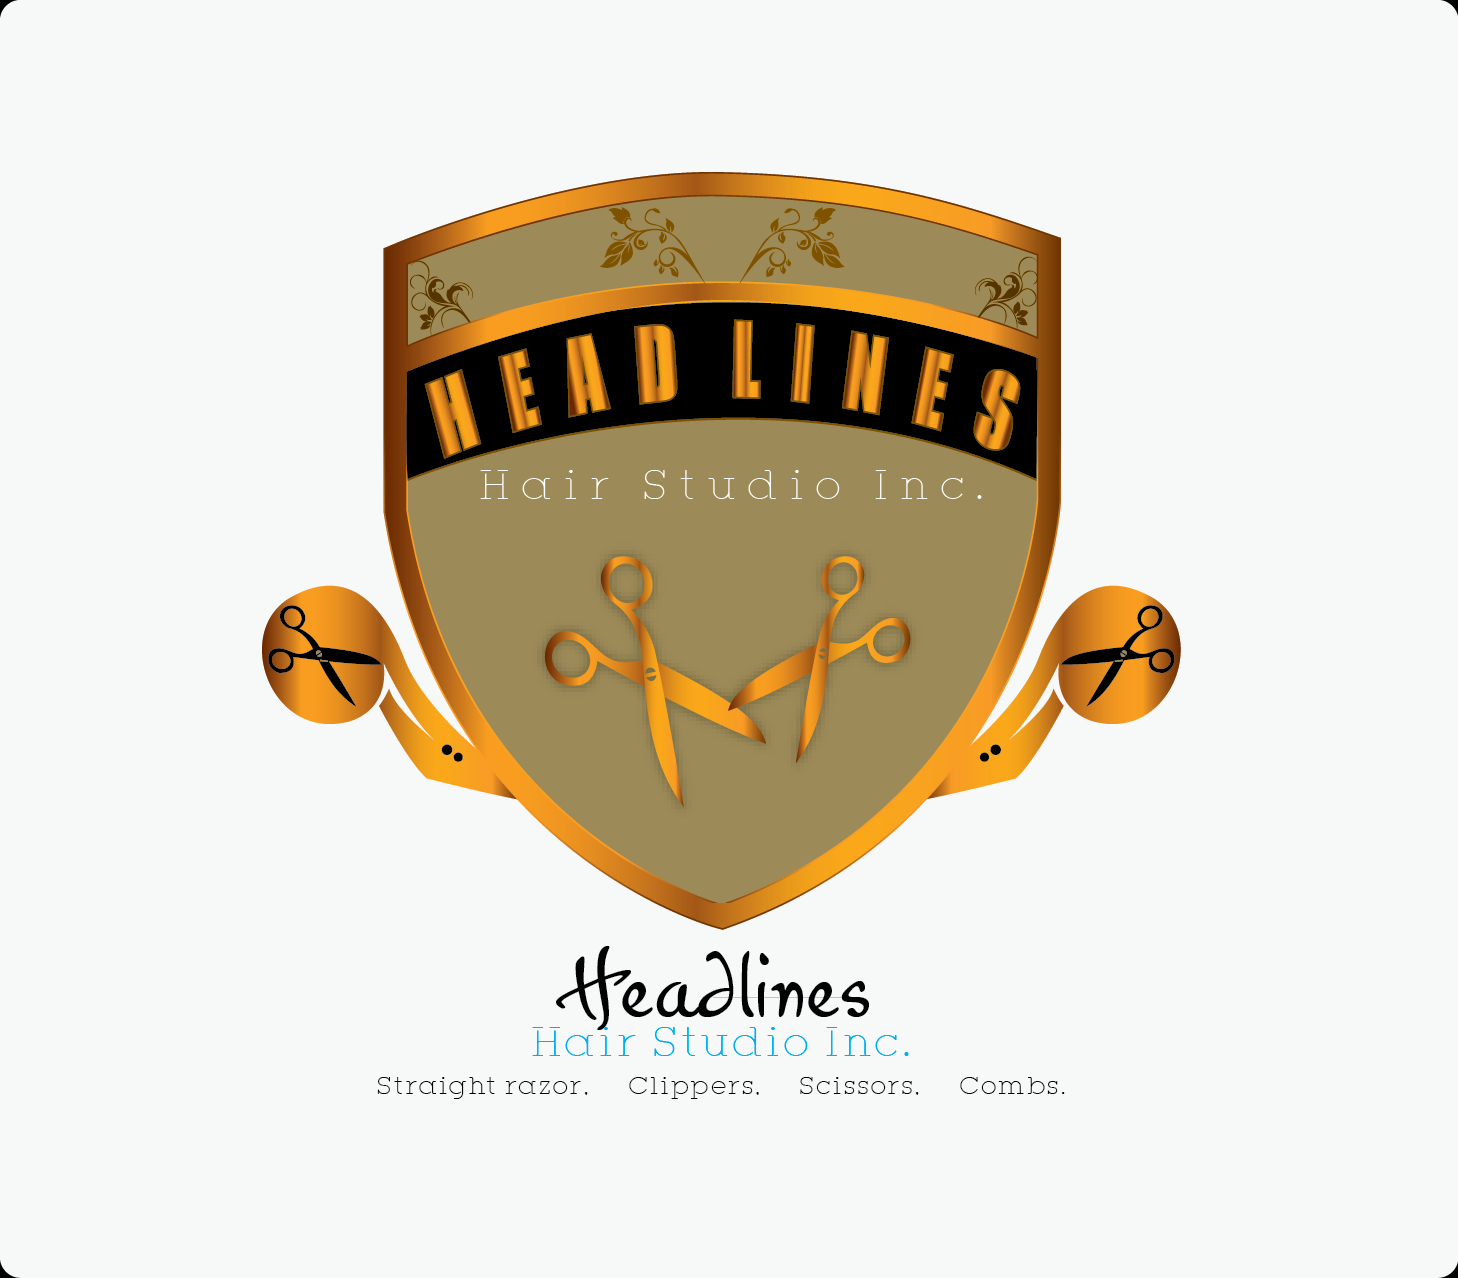 Logo Design by Md Iftekharul Islam Pavel - Entry No. 29 in the Logo Design Contest Fun Logo Design for HEADLINES HAIR STUDIO INC.